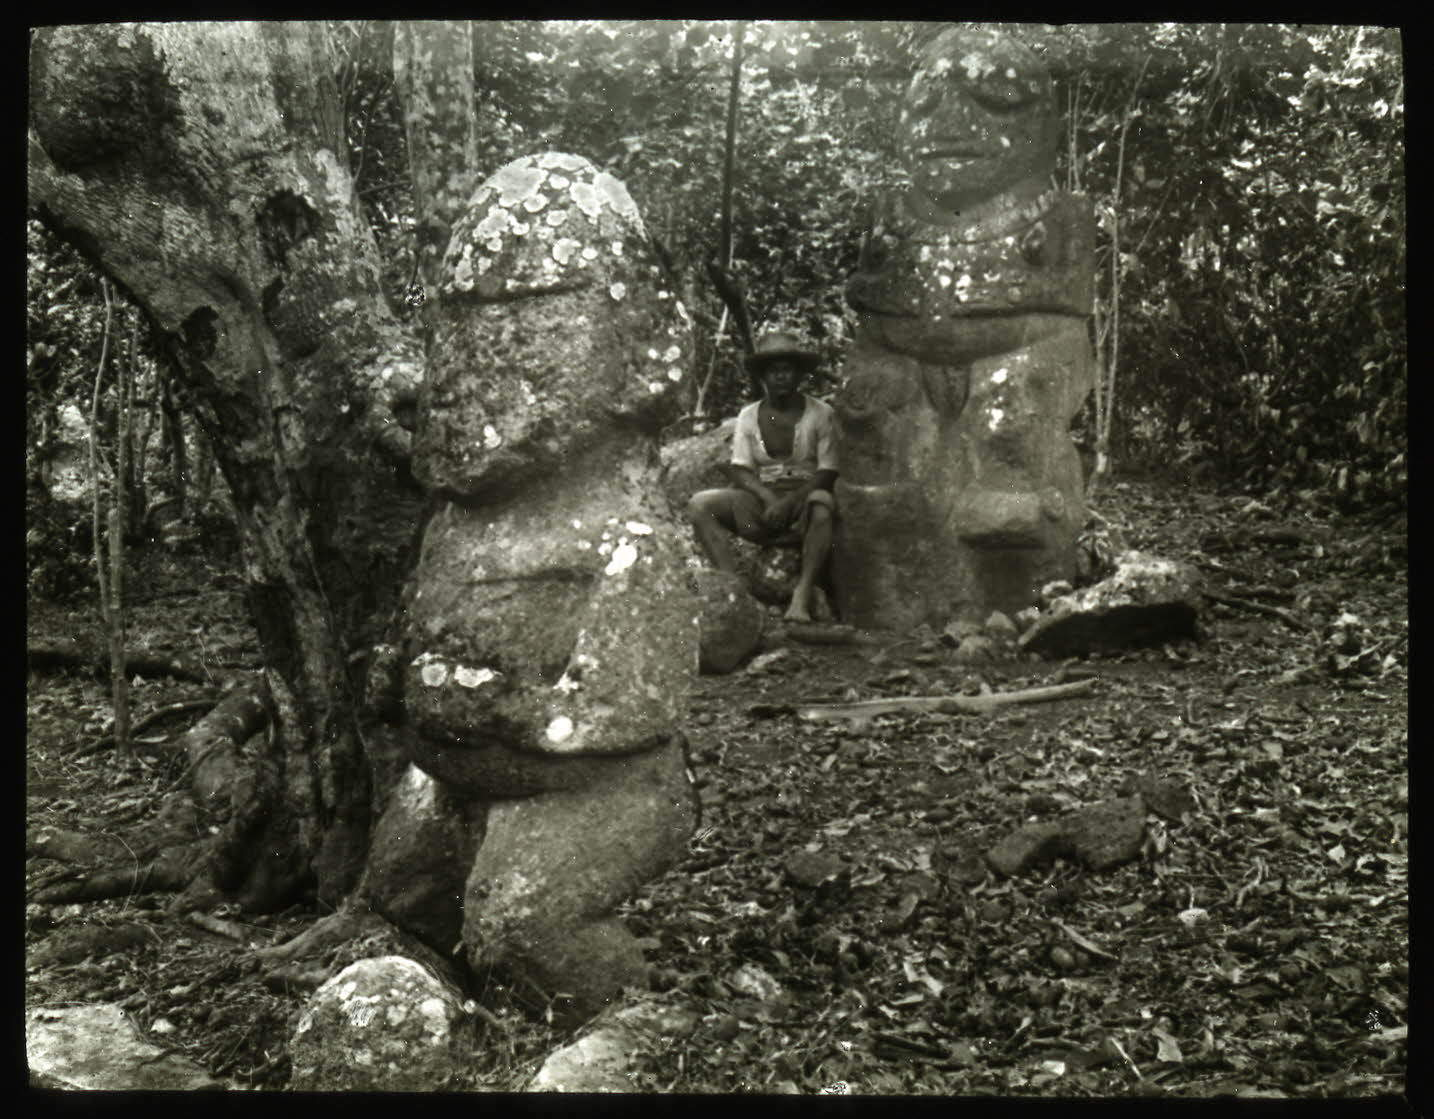 Photograph of two Tiʻi de Raivavae (Tiʻi Papa and Tiʻi One; or Heiata and Moana) and a Polynesian man. From archaeological expedition led by William Scoresby Routledge and Katherine Maria Routledge, 1921-1923, British Museum